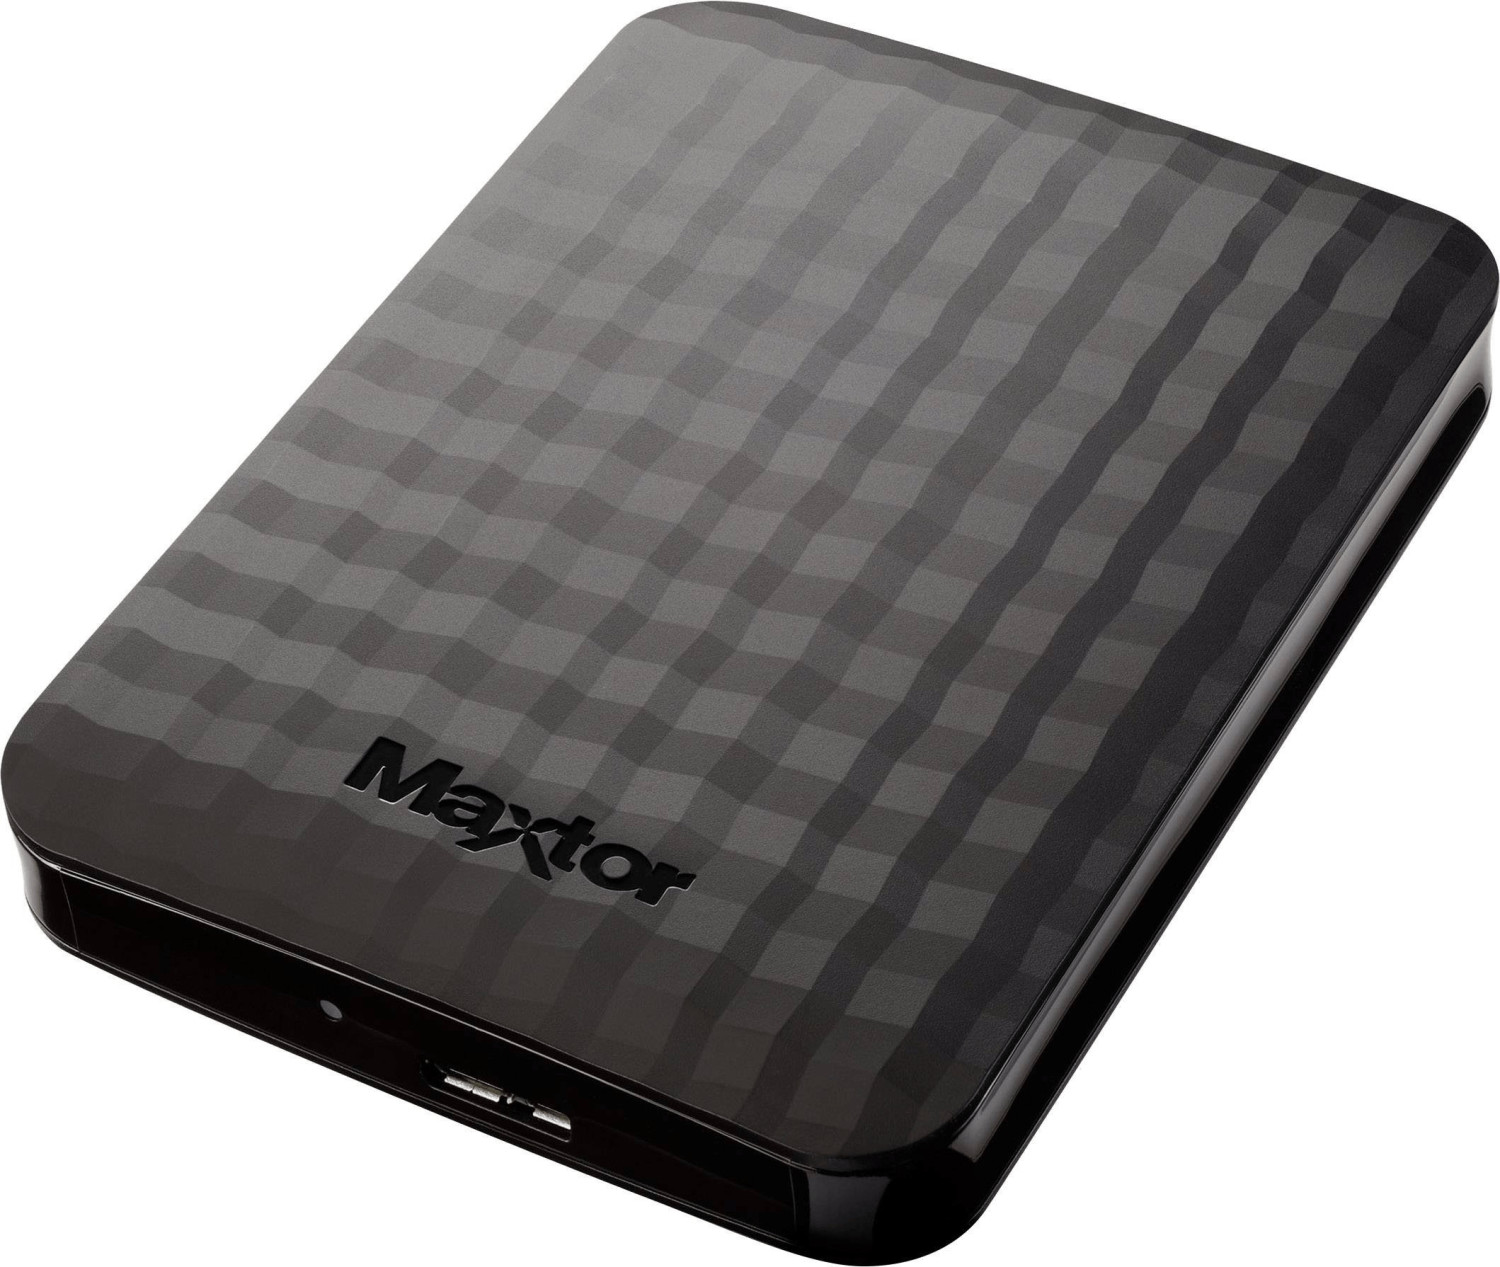 Image of Maxtor M3 Portable